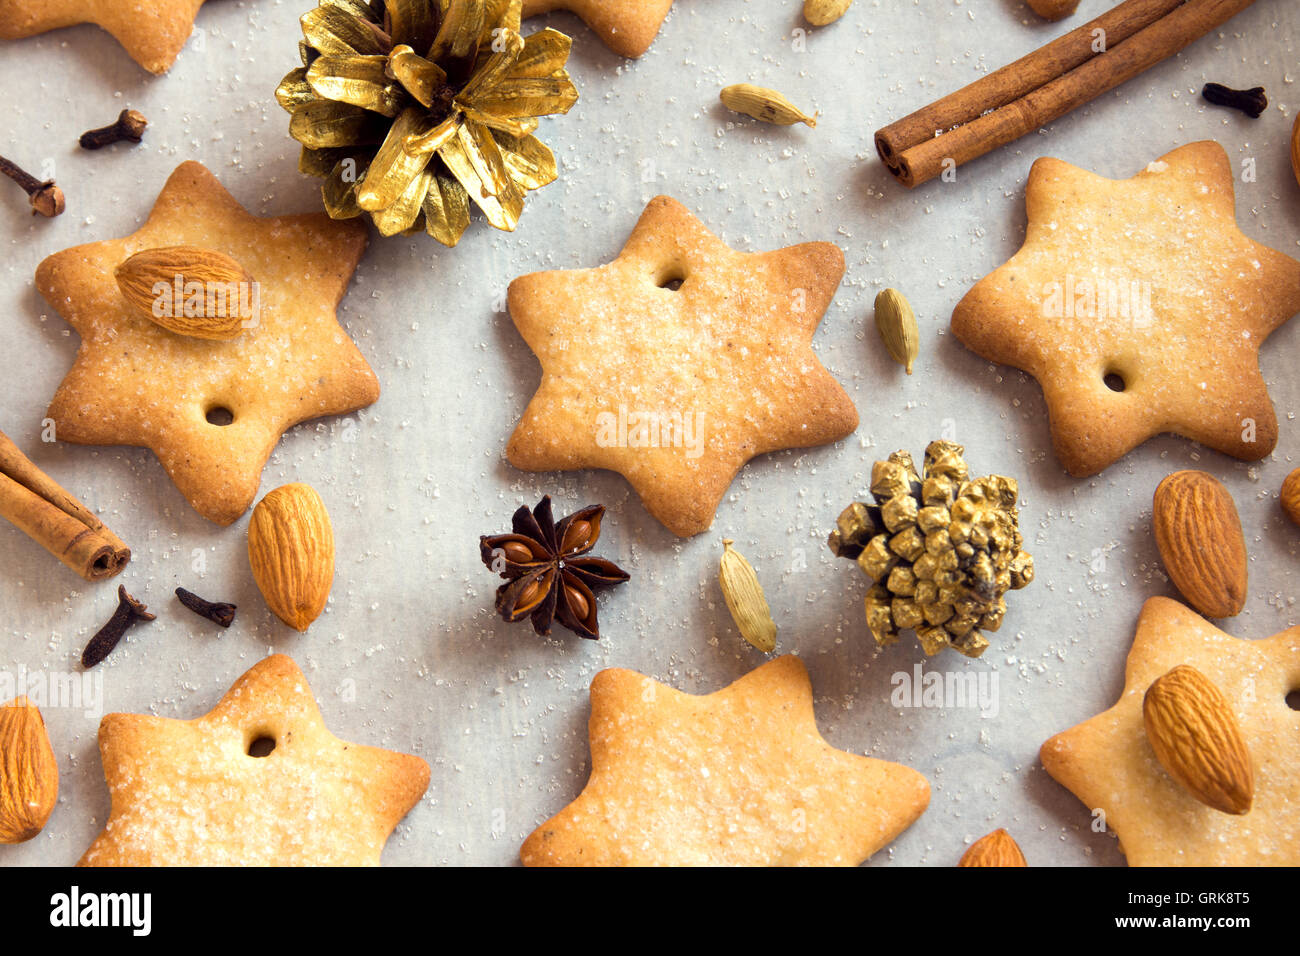 Christmas cookies and spices on baking paper - homemade winter bakery - Stock Image